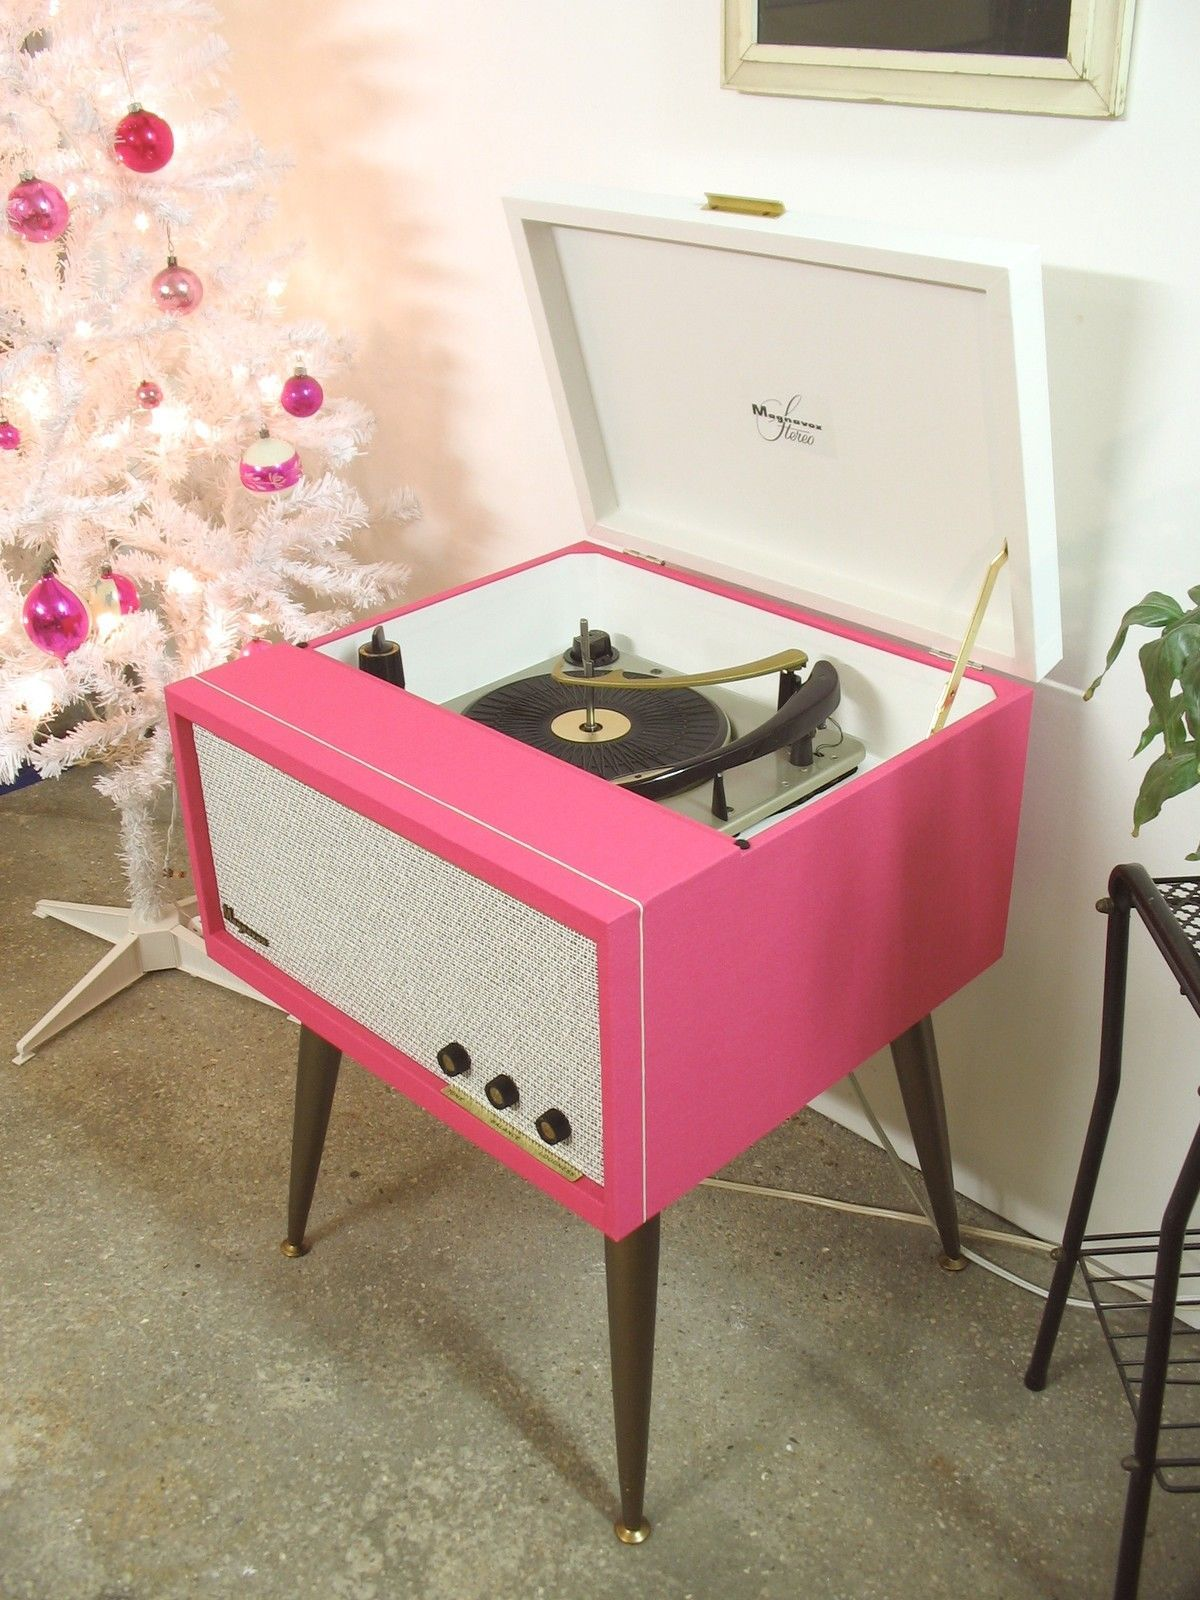 Vintage Pink Record Player That Dreams Are Made Of #Pinklove